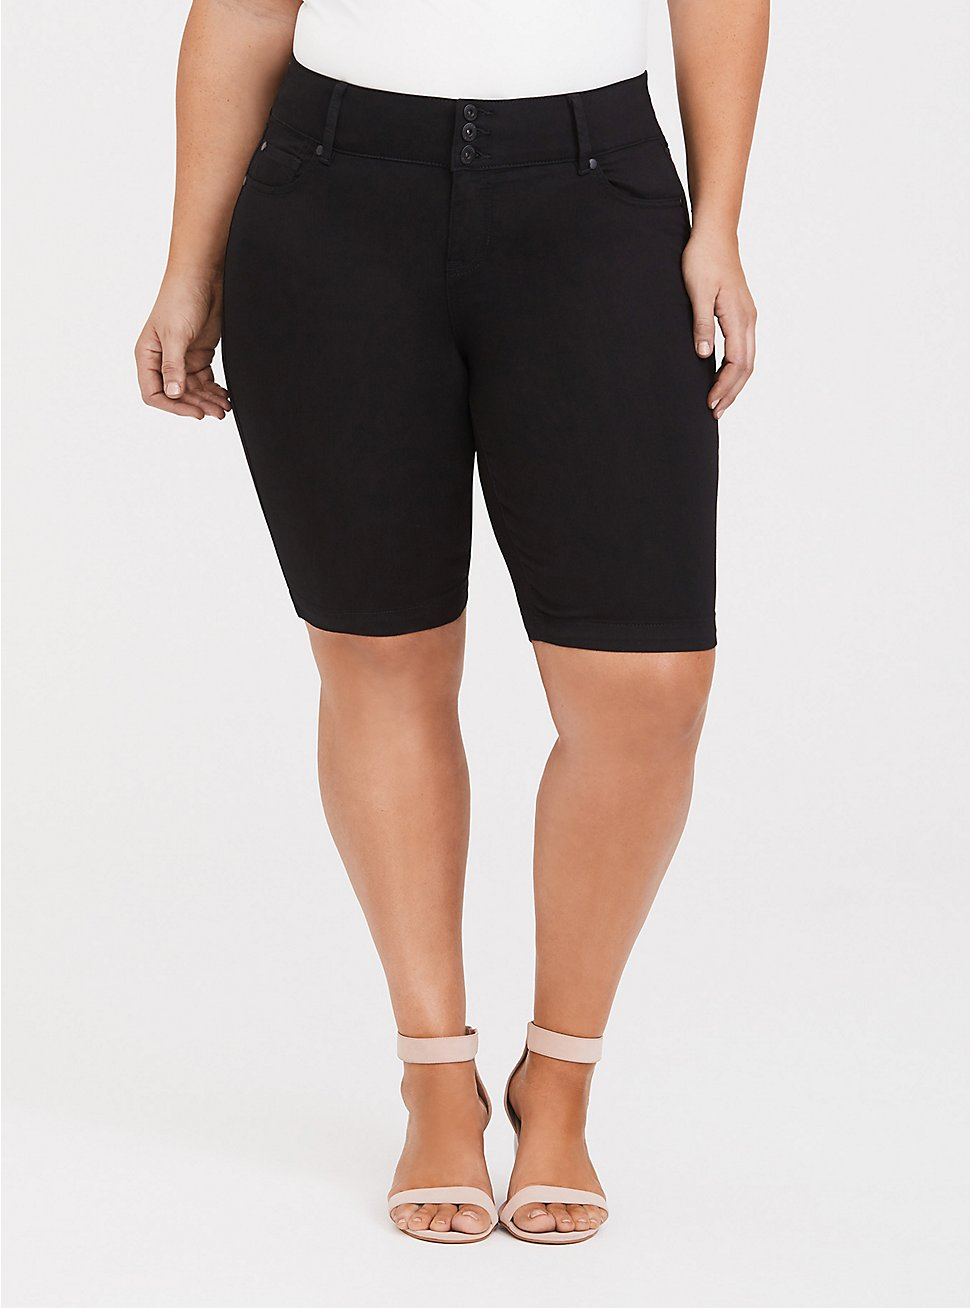 Jegging Bermuda Short - Super Stretch Black, BLACK, hi-res